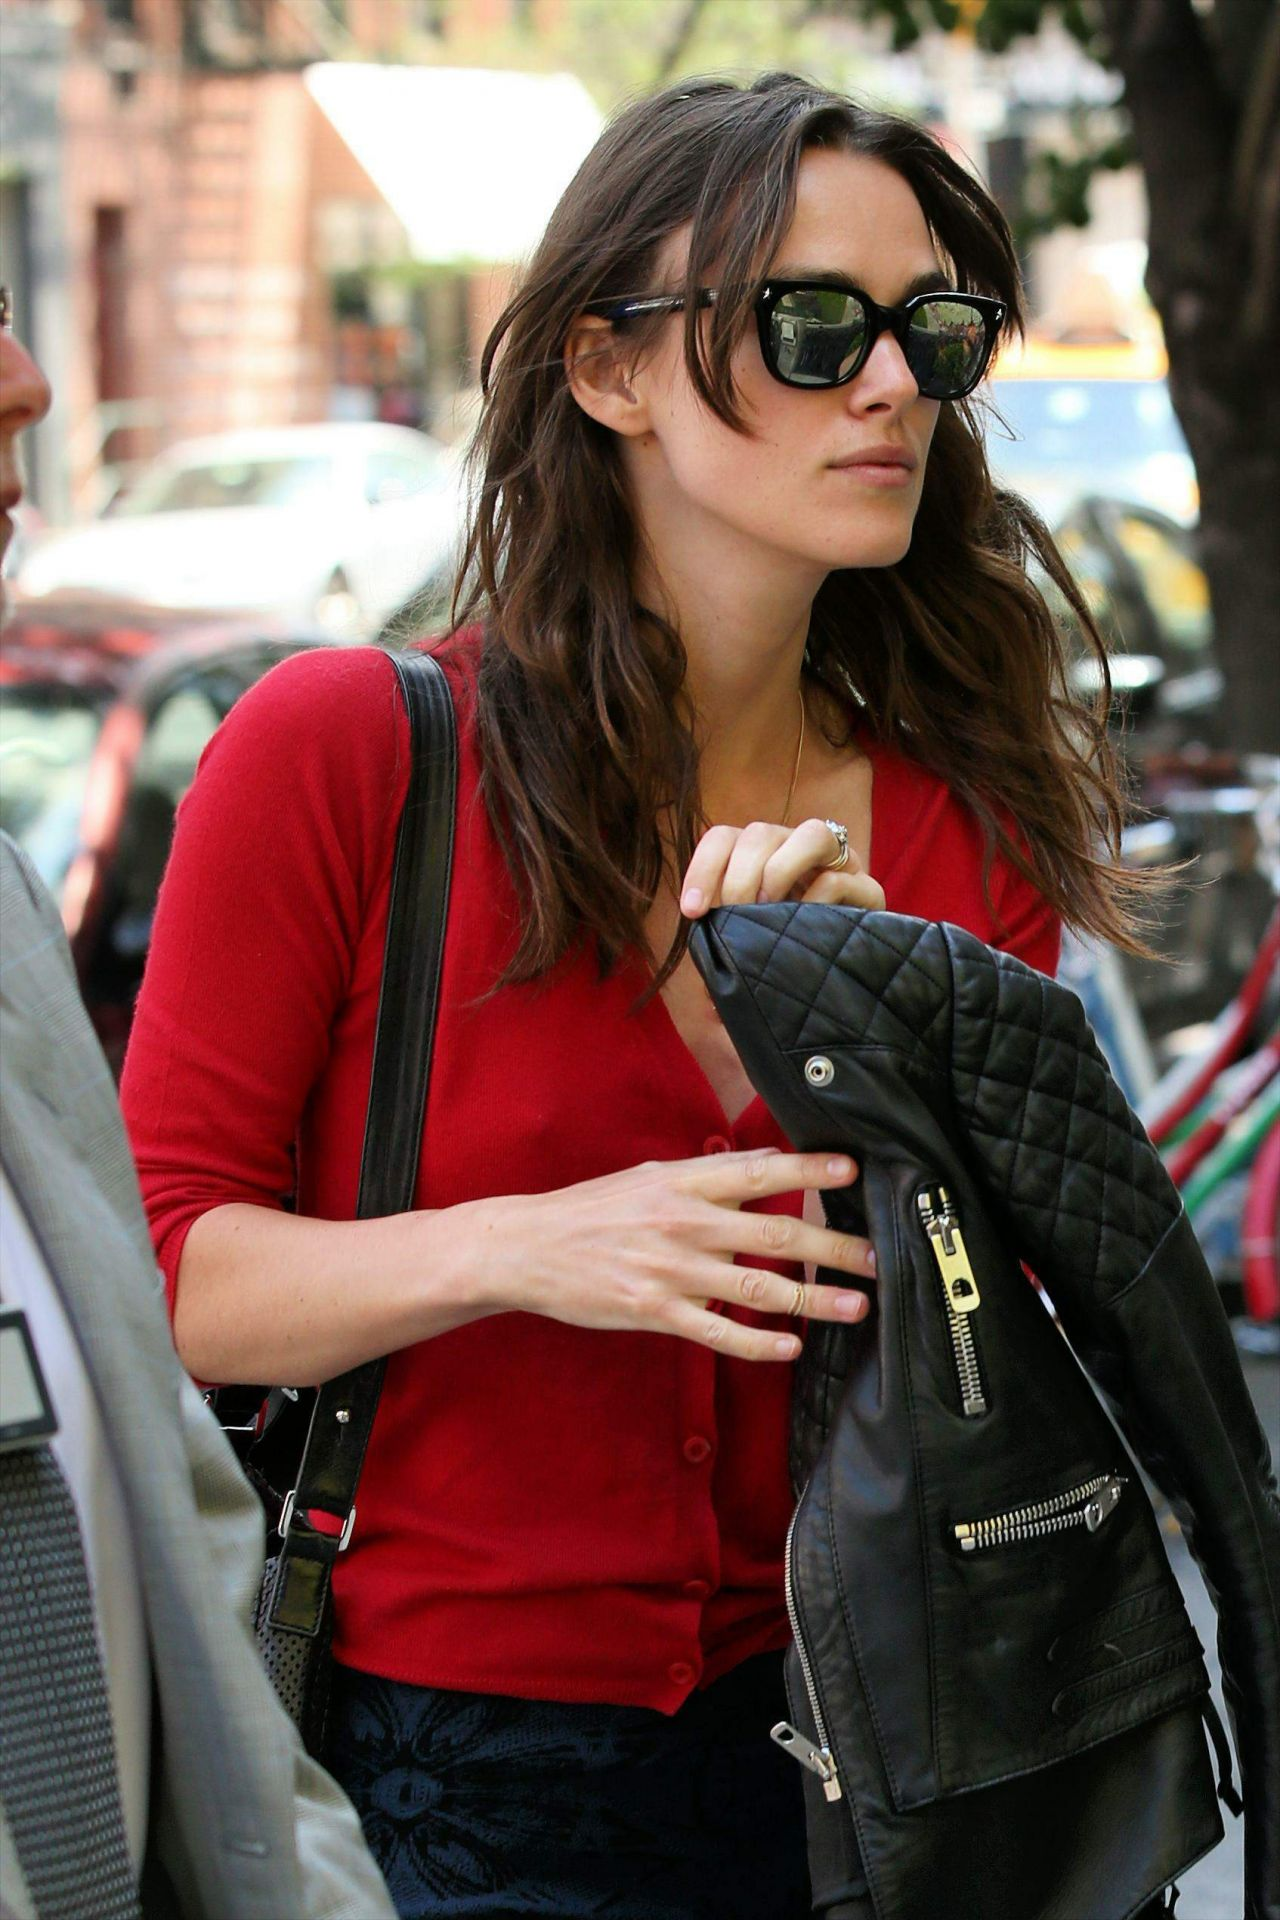 Keira Knightley Arrives at the Crosby Hotel in New York City - June 2014